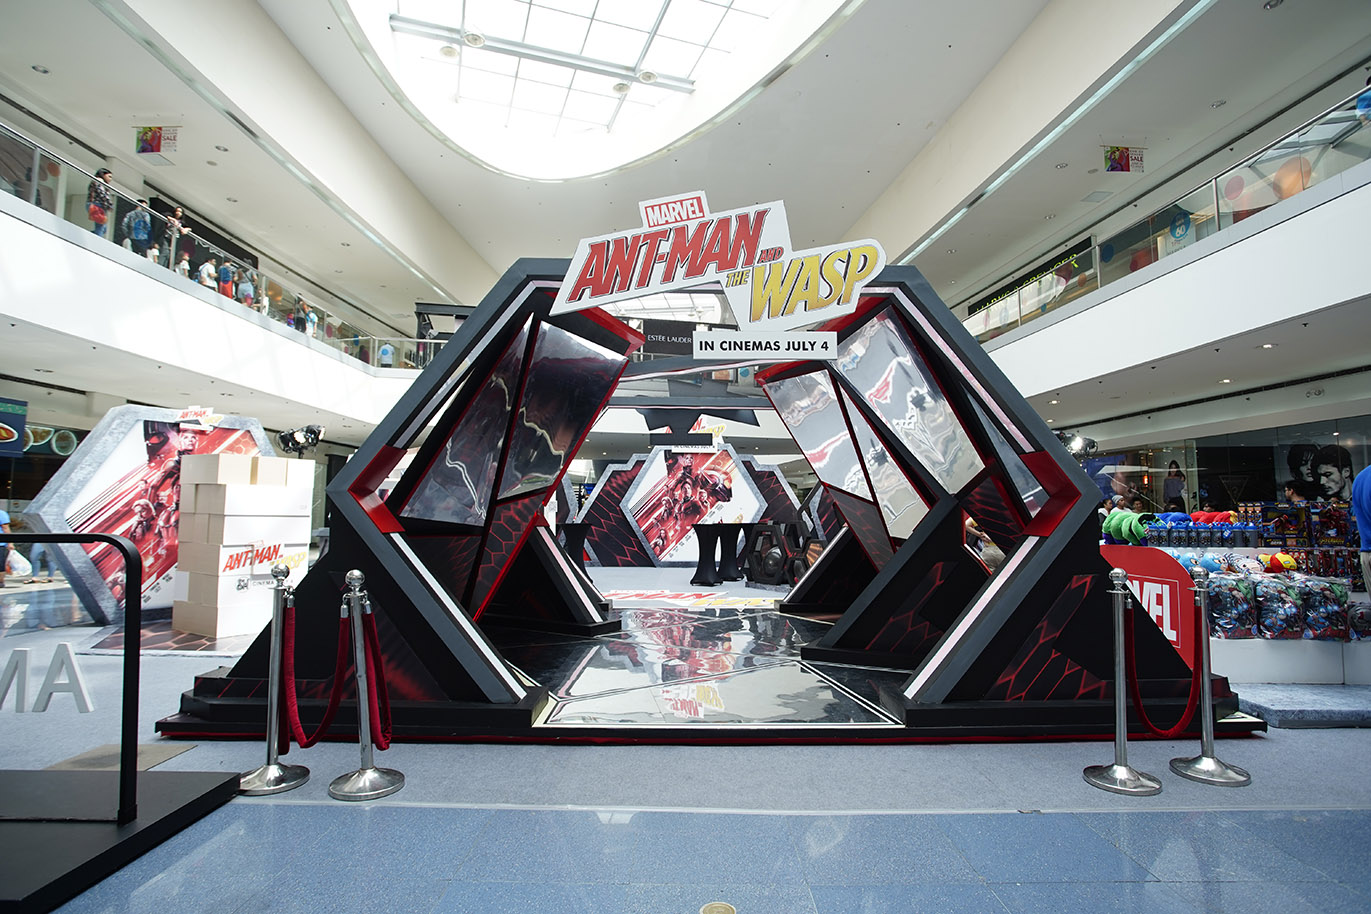 SM Cinema's Not The Actual Size Ant-Man and The Wasp Exhibit